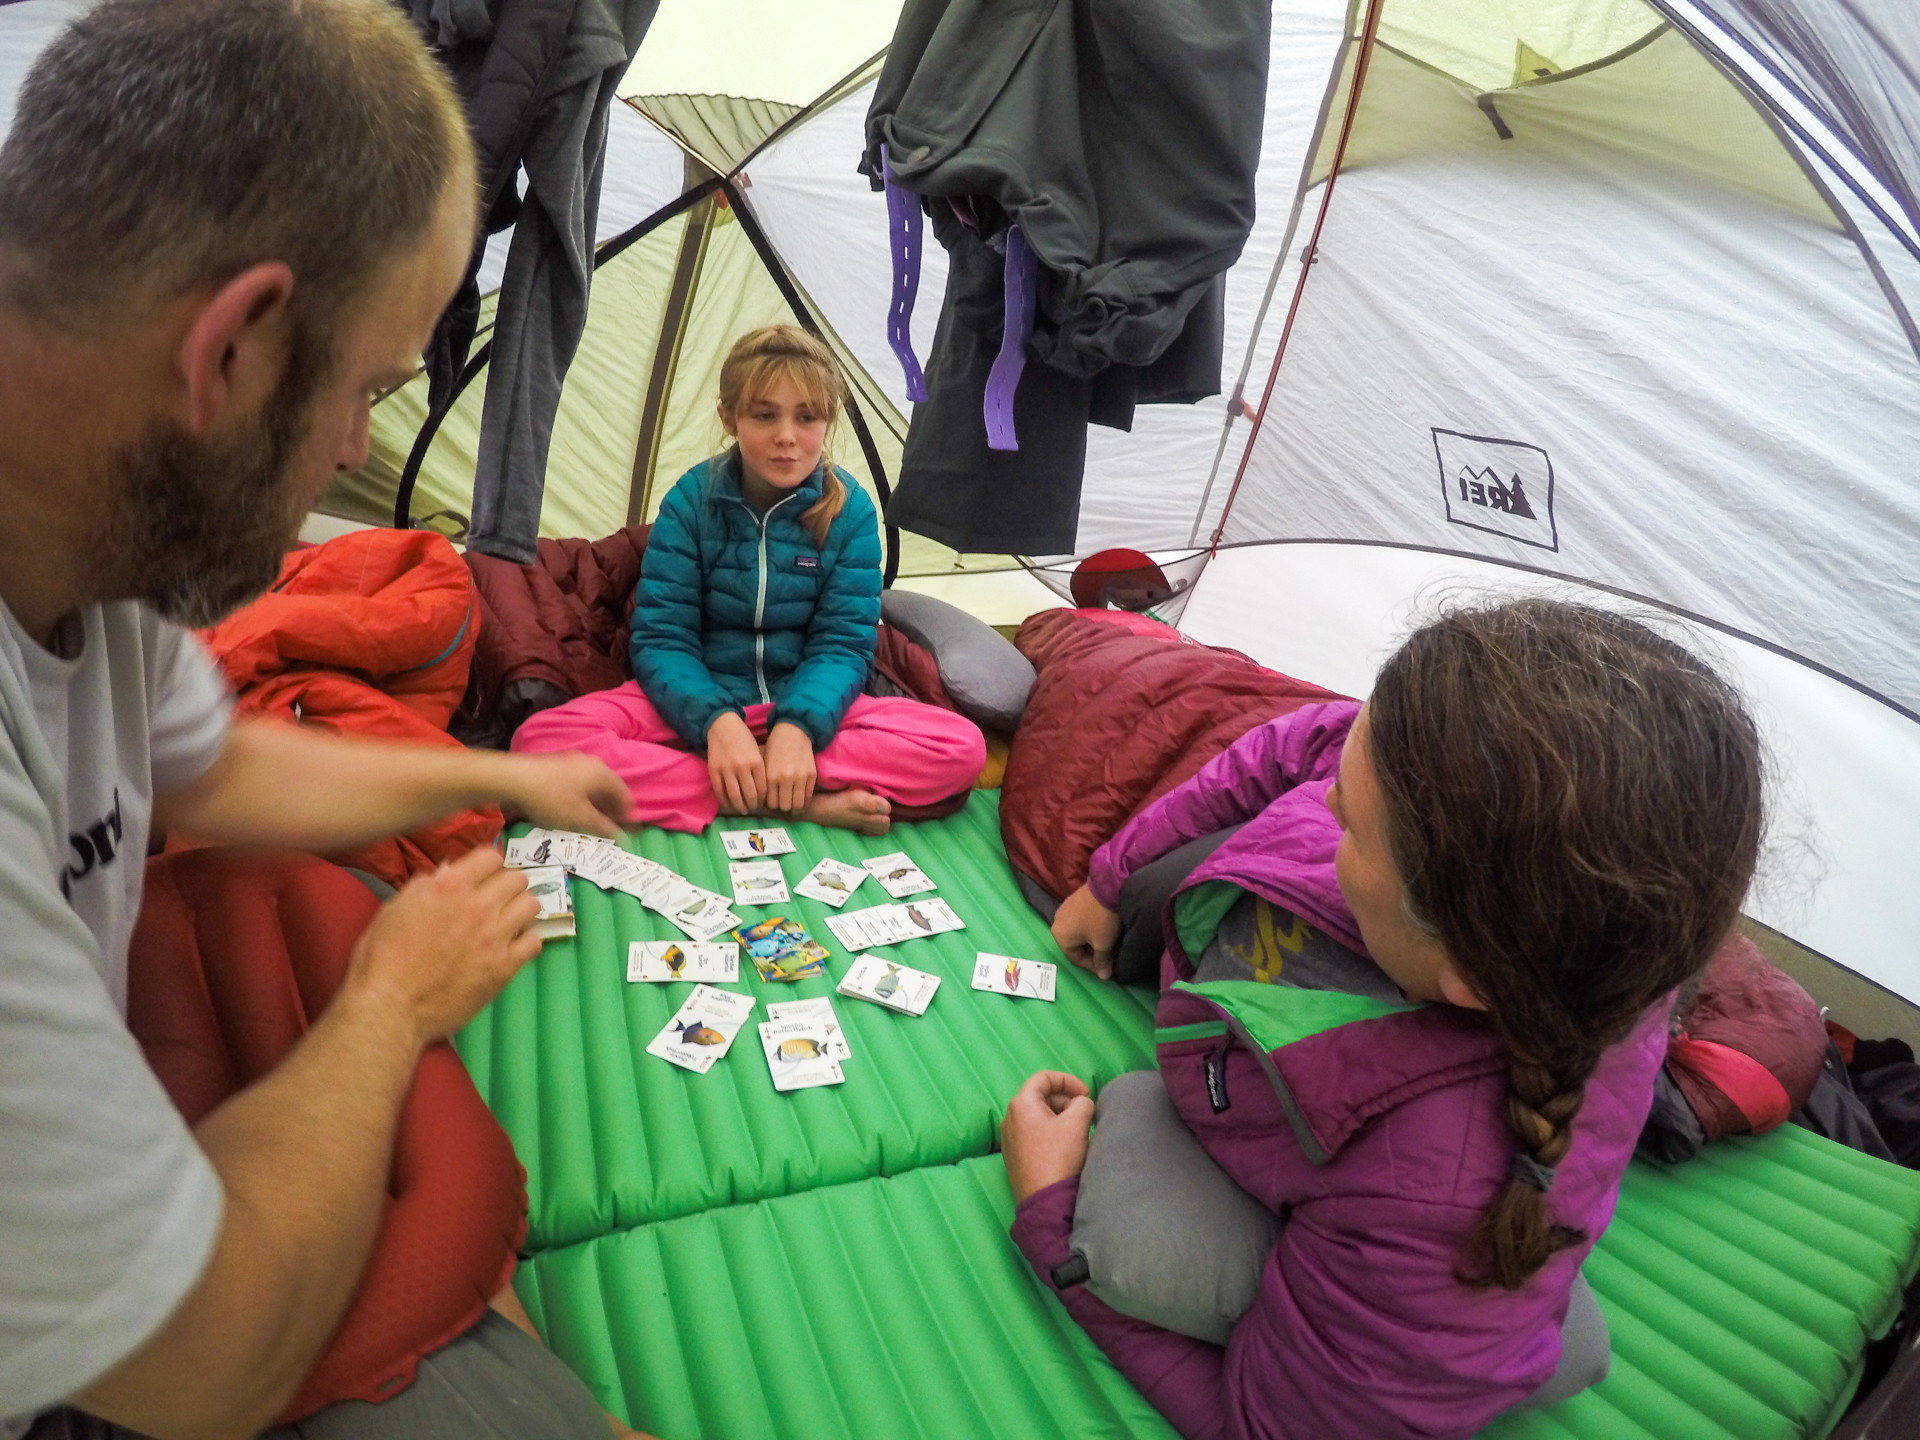 Family in tent playing a card game.